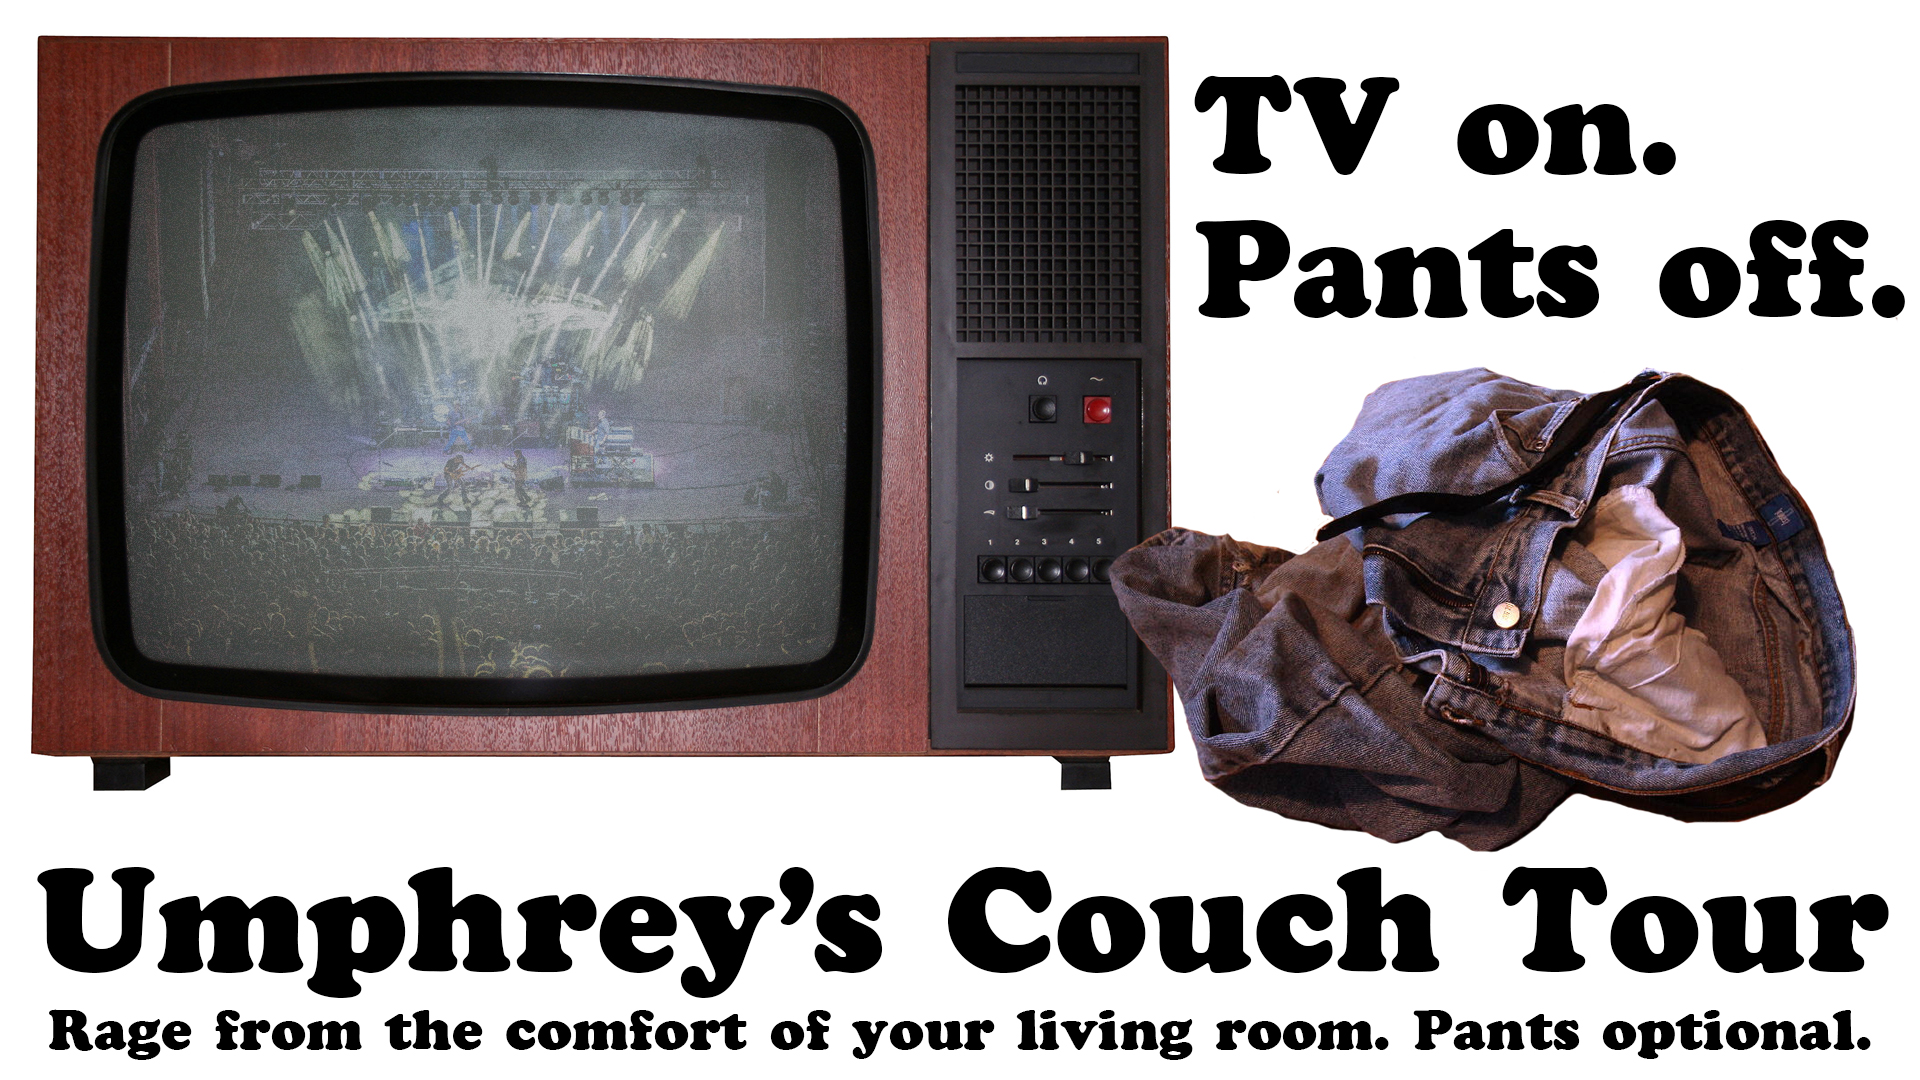 TV on. Pants off. 16x9